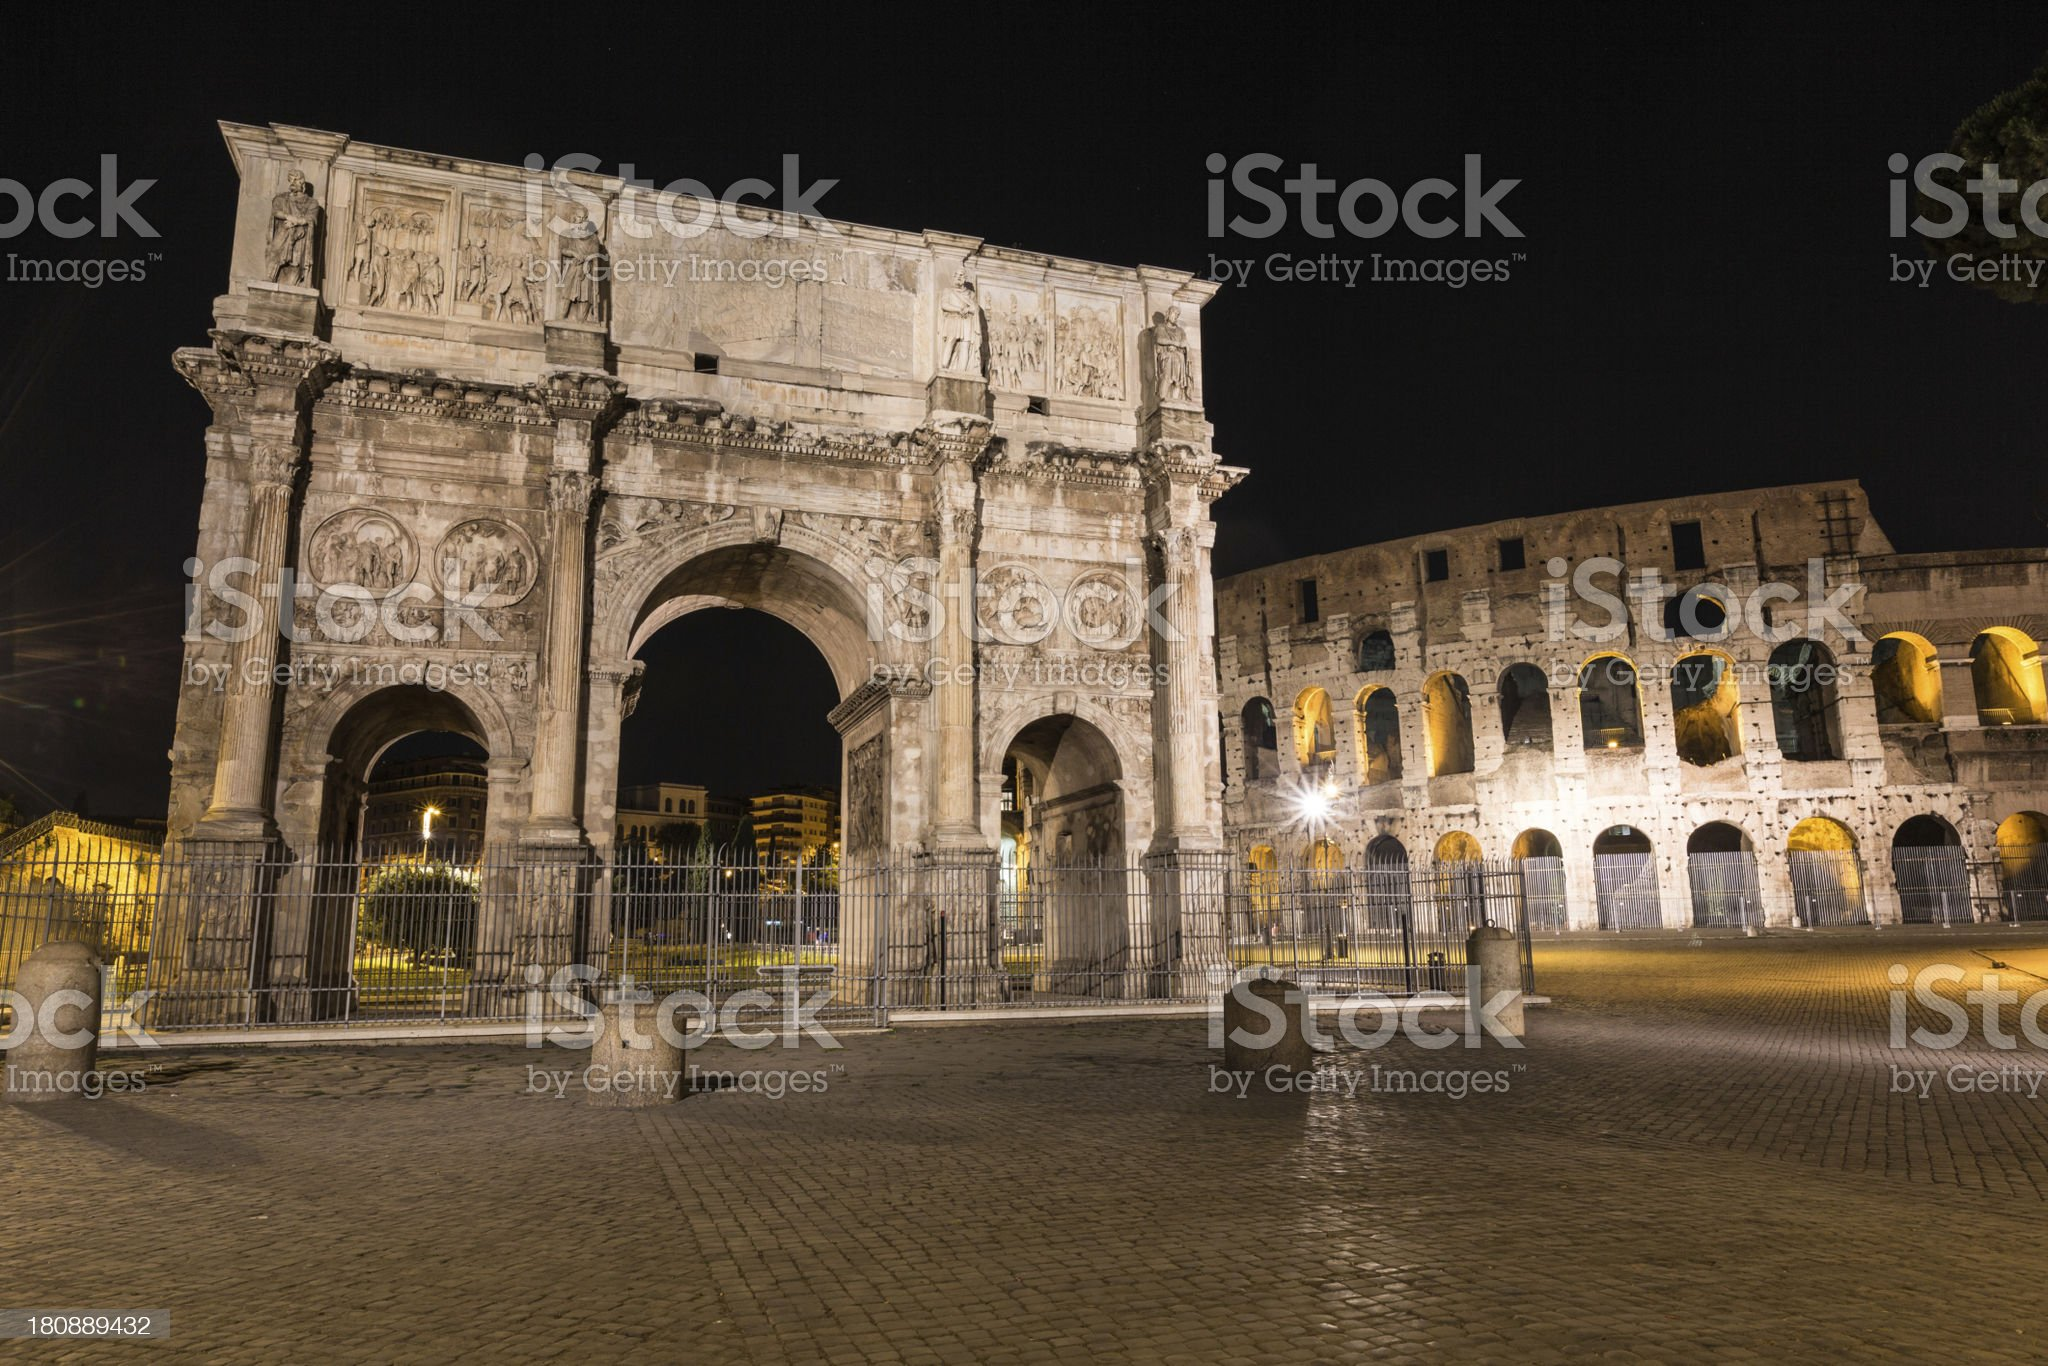 Colosseum and Arch of Triumph in Rome at Night royalty-free stock photo